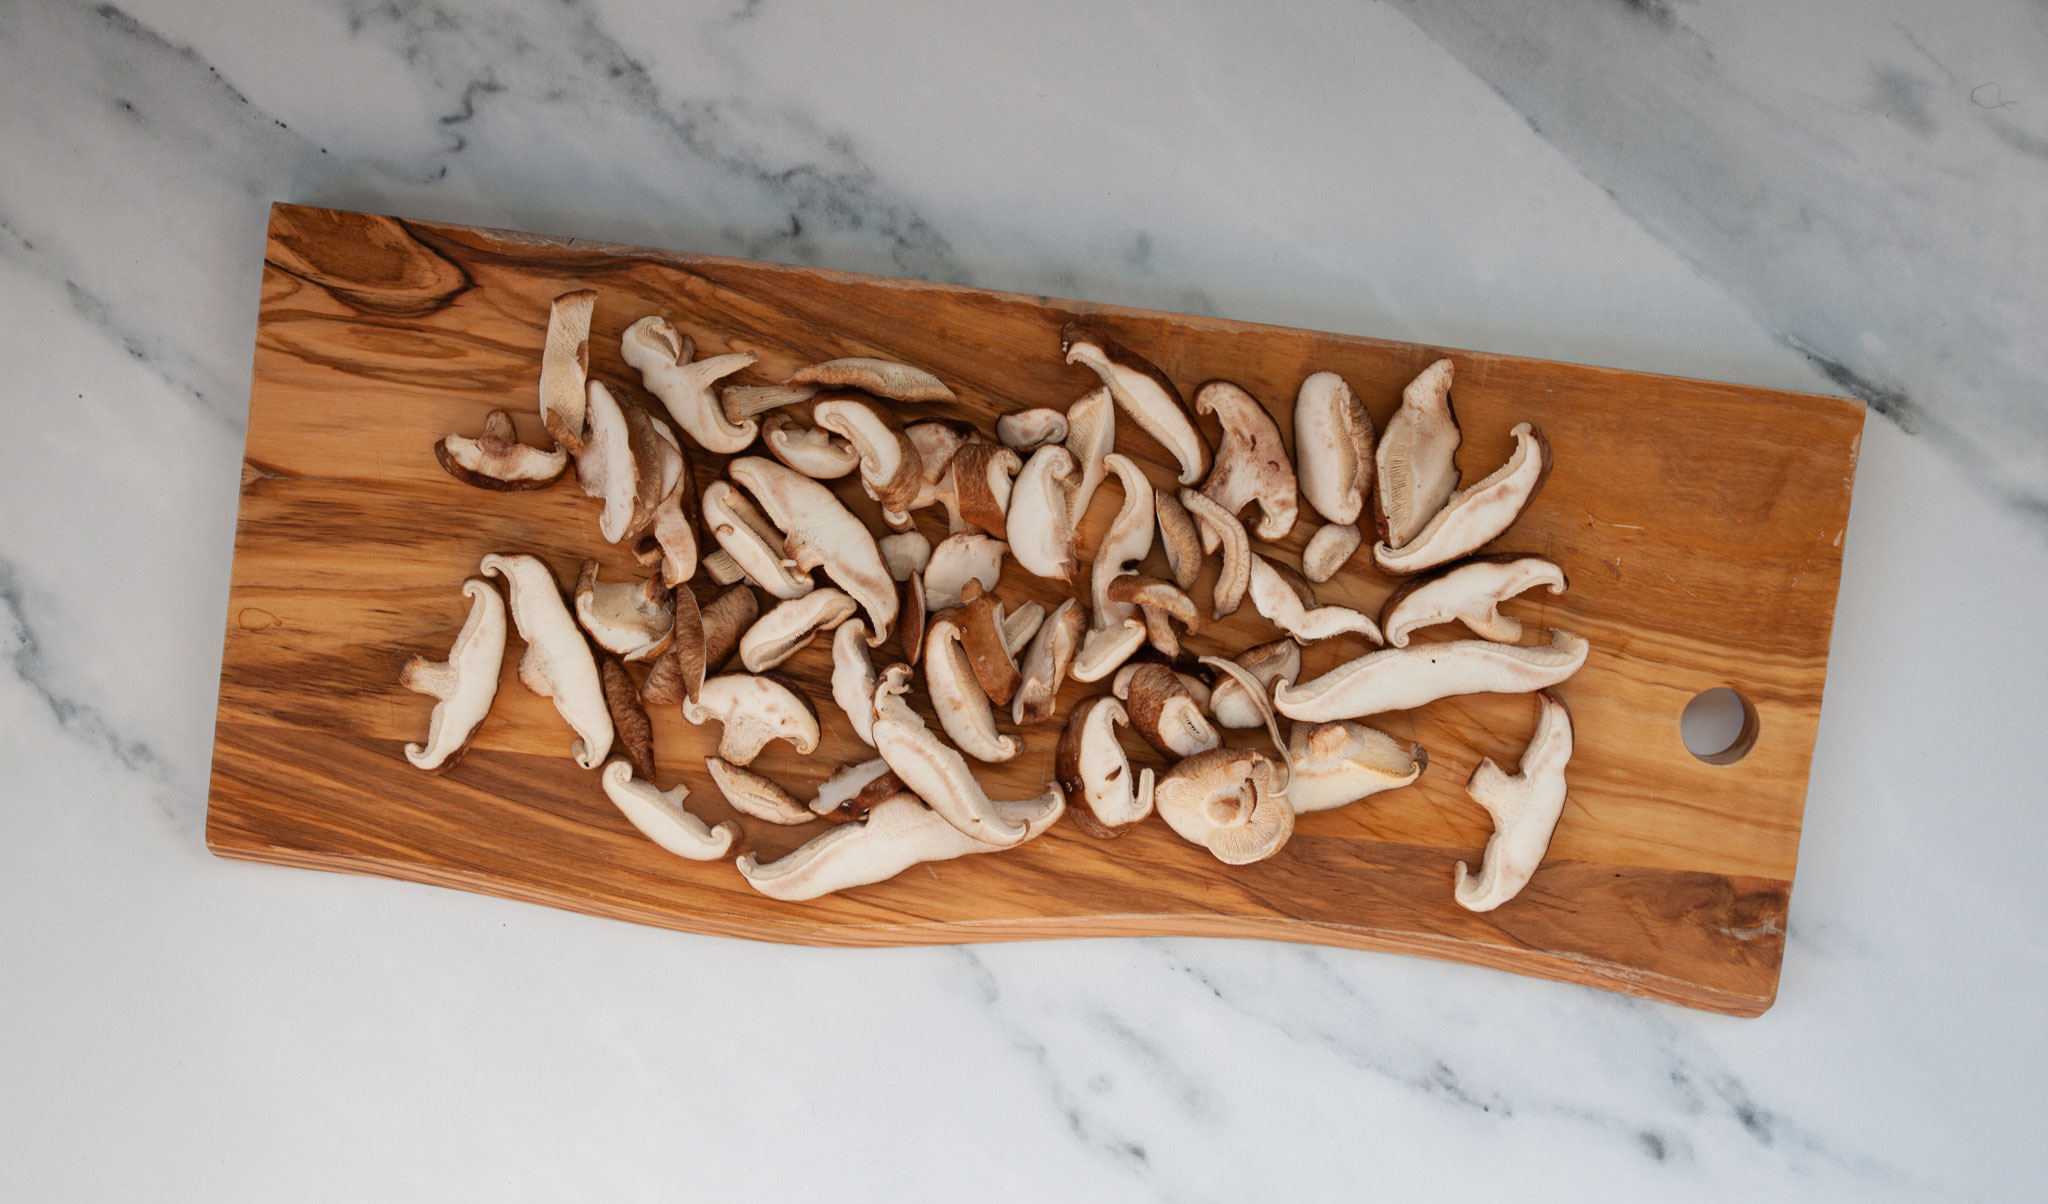 Sliced mushrooms resting on a wooden cutting board.